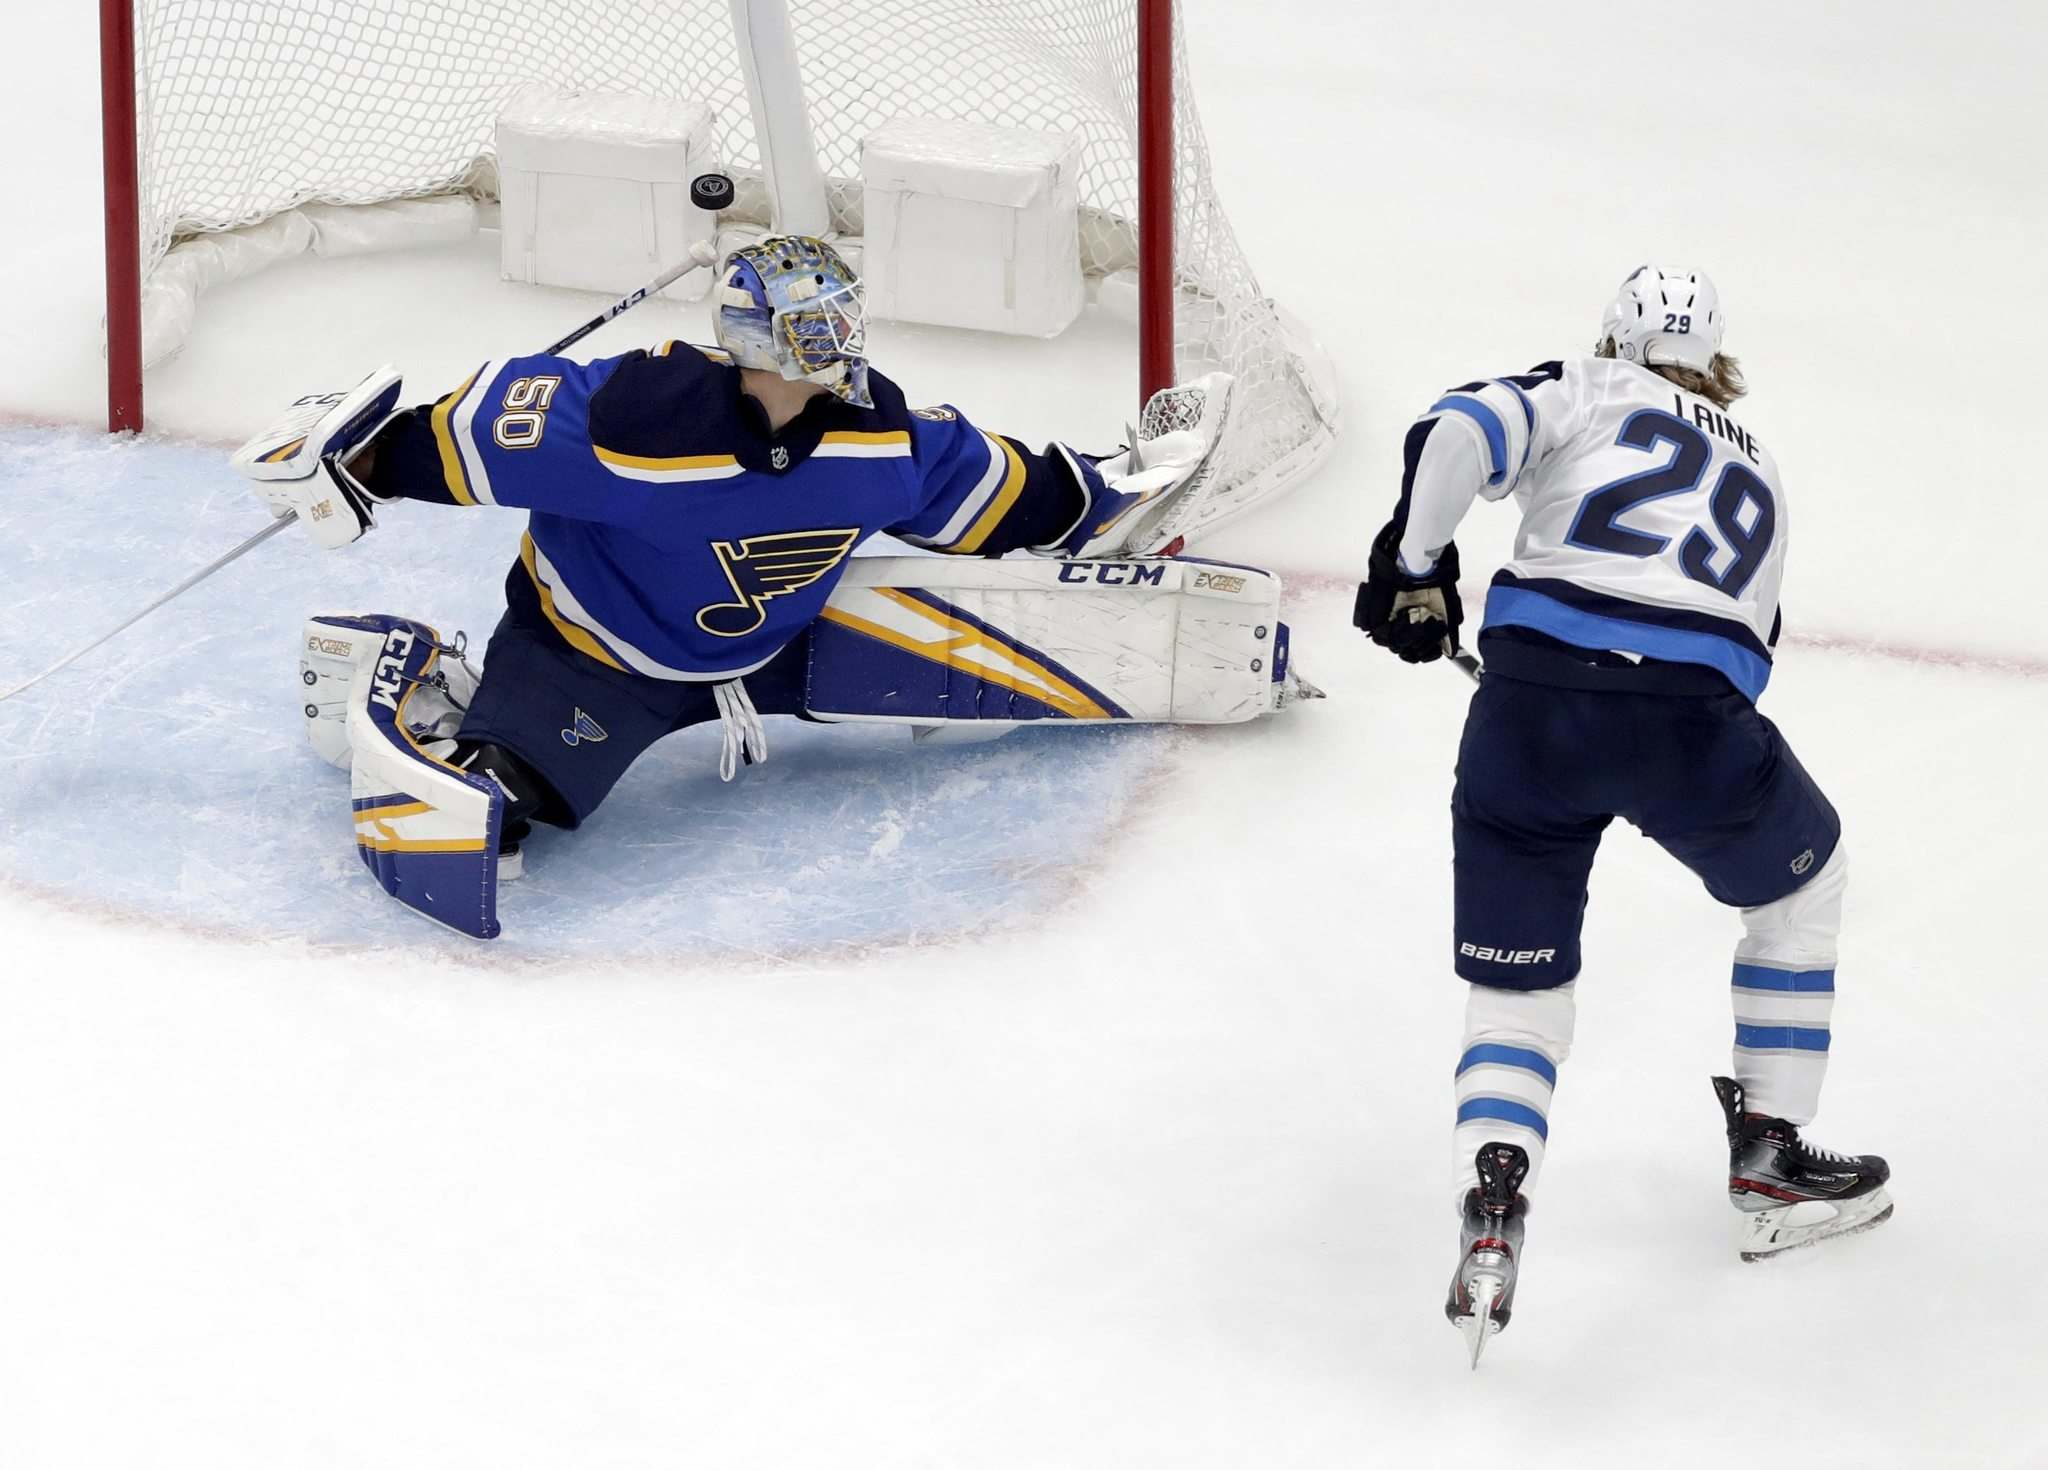 <p>Patrik Laine puts the puck past Blues goaltender Jordan Binnington in Game 3 Sunday. The Jets would score 6 goals on the seemingly unbeatable goalie for a 6-3 win over the Blues, the Jets first in the series.</p>